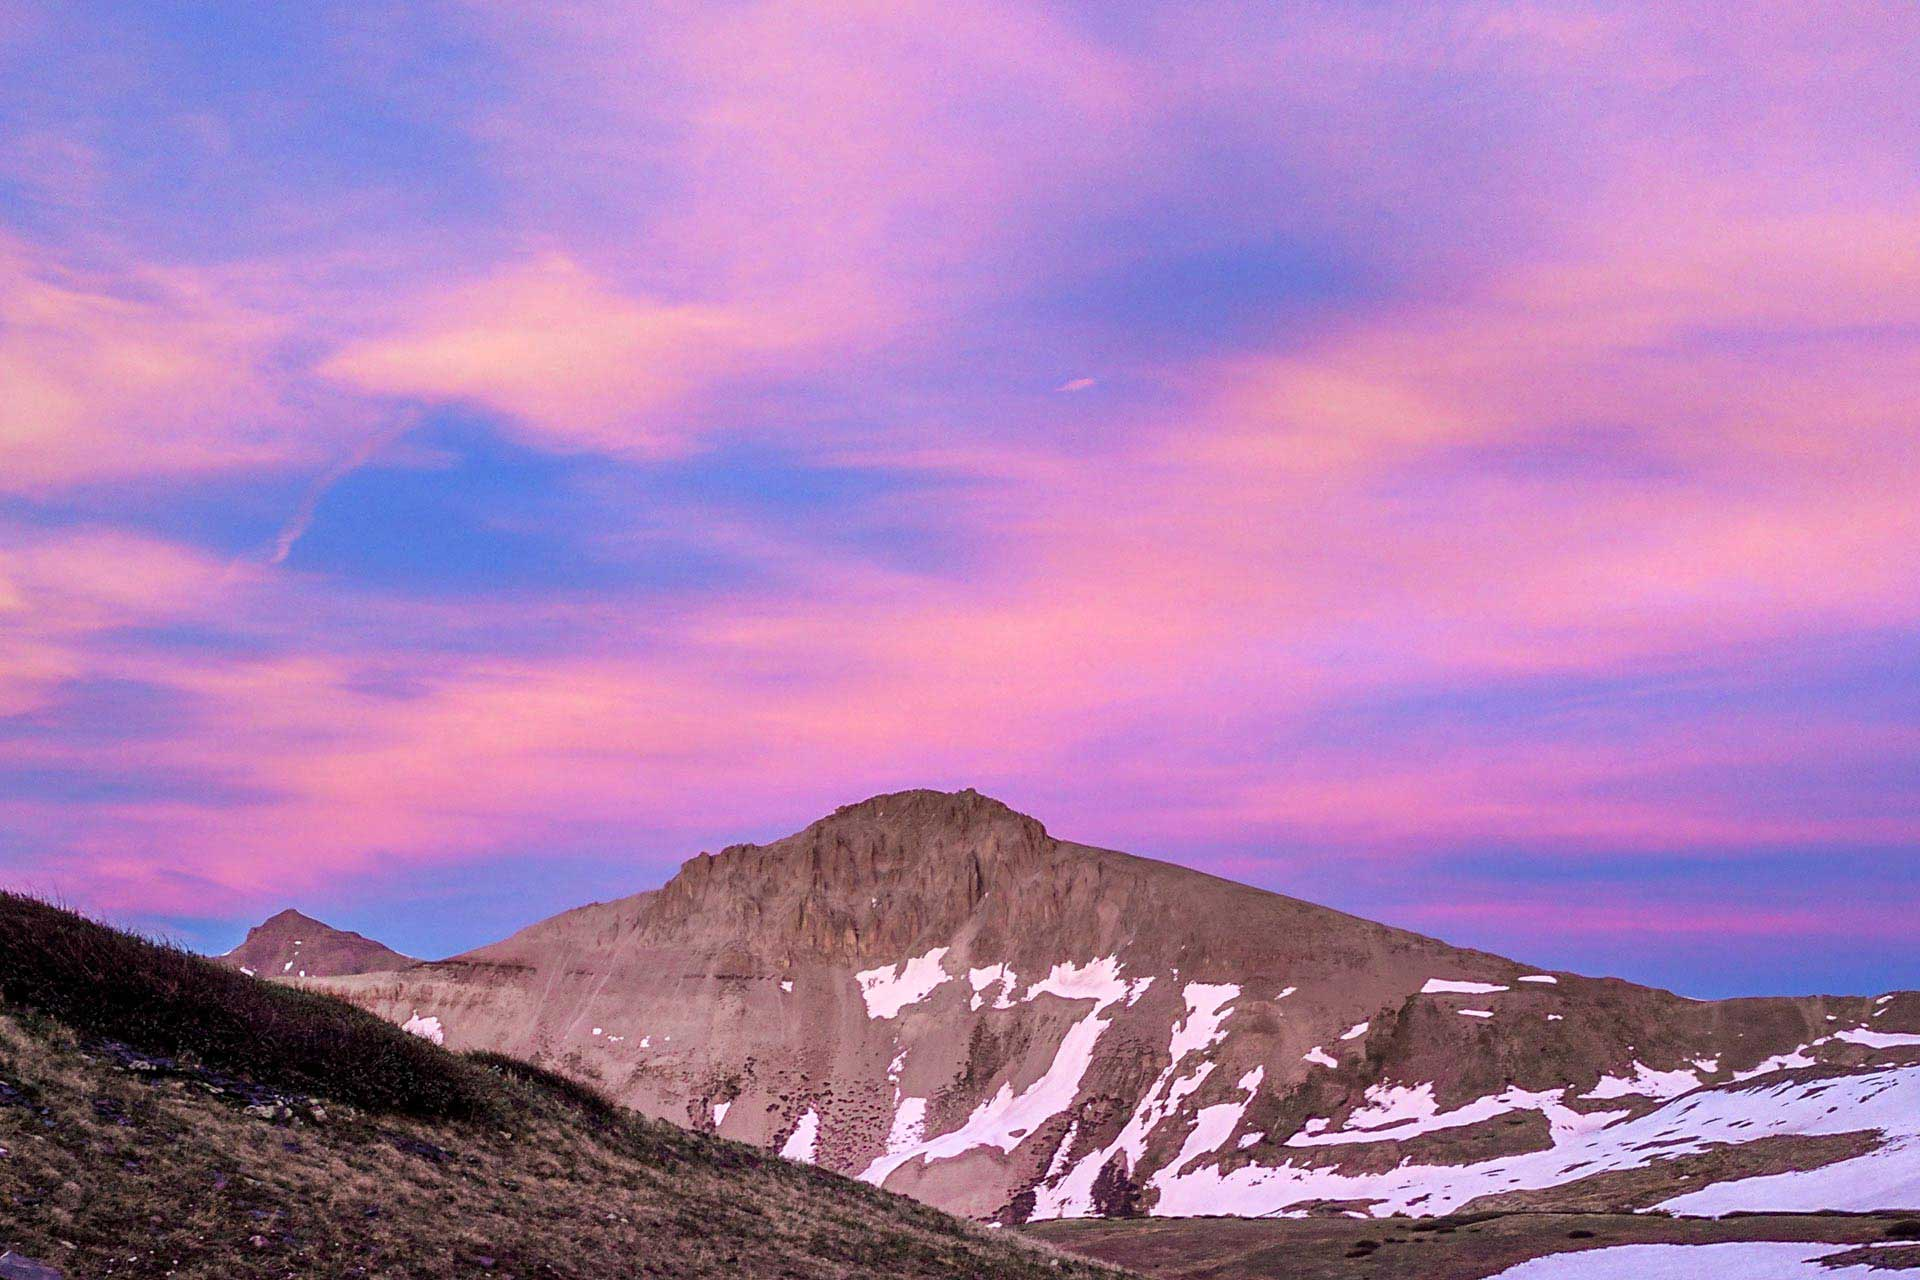 CDT Colorado San Juan Mountains Pink Sunset